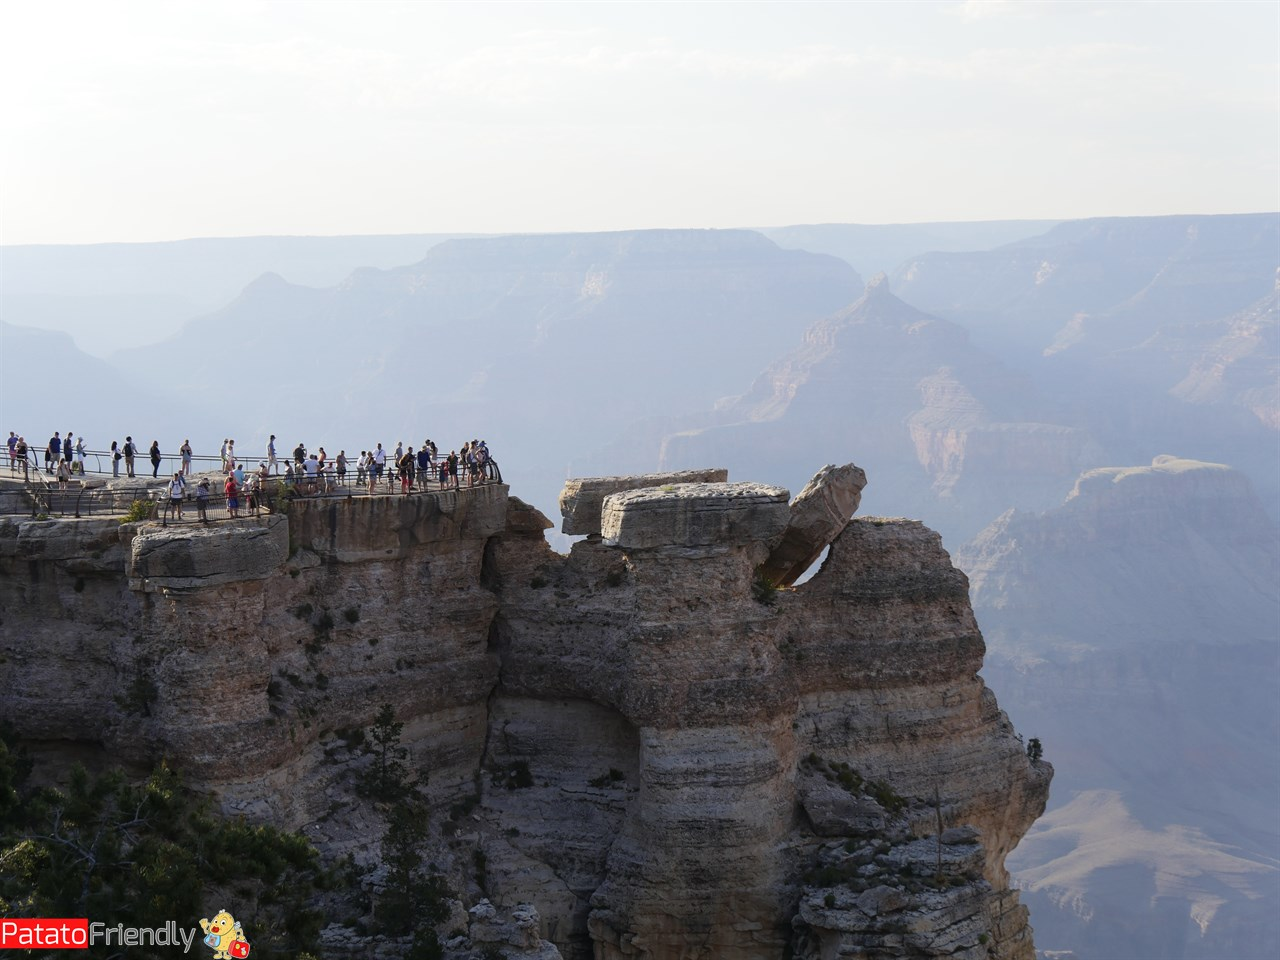 [cml_media_alt id='14197']Belvedere del Grand Canyon coi bimbi[/cml_media_alt]